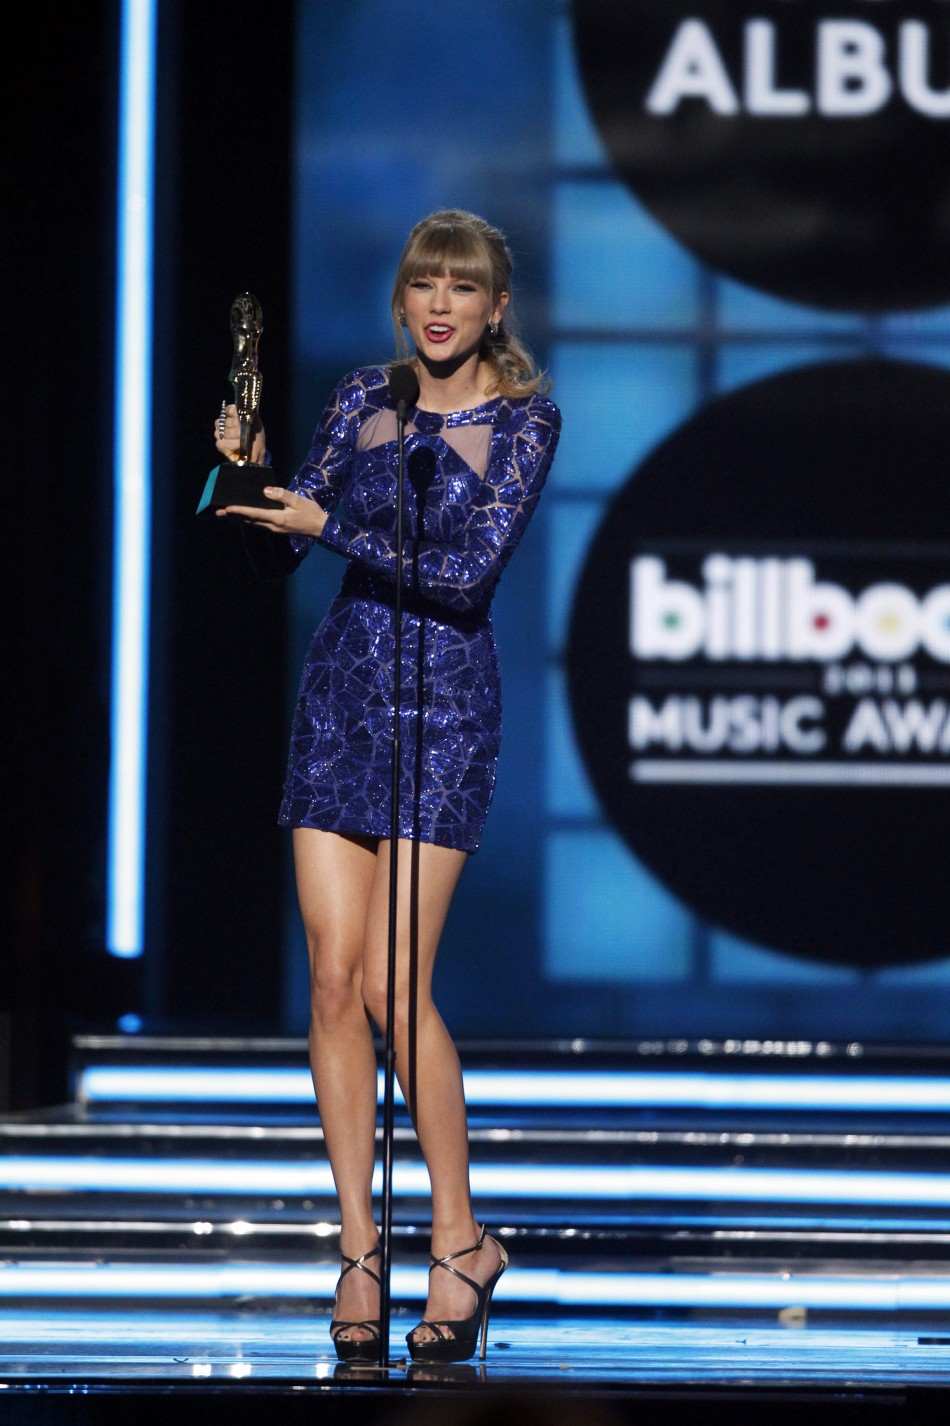 Singer Taylor Swift accepts the award for Top Billboard 200 Album during the Billboard Music Awards at the MGM Grand Garden Arena in Las Vegas, Nevada May 19, 2013.